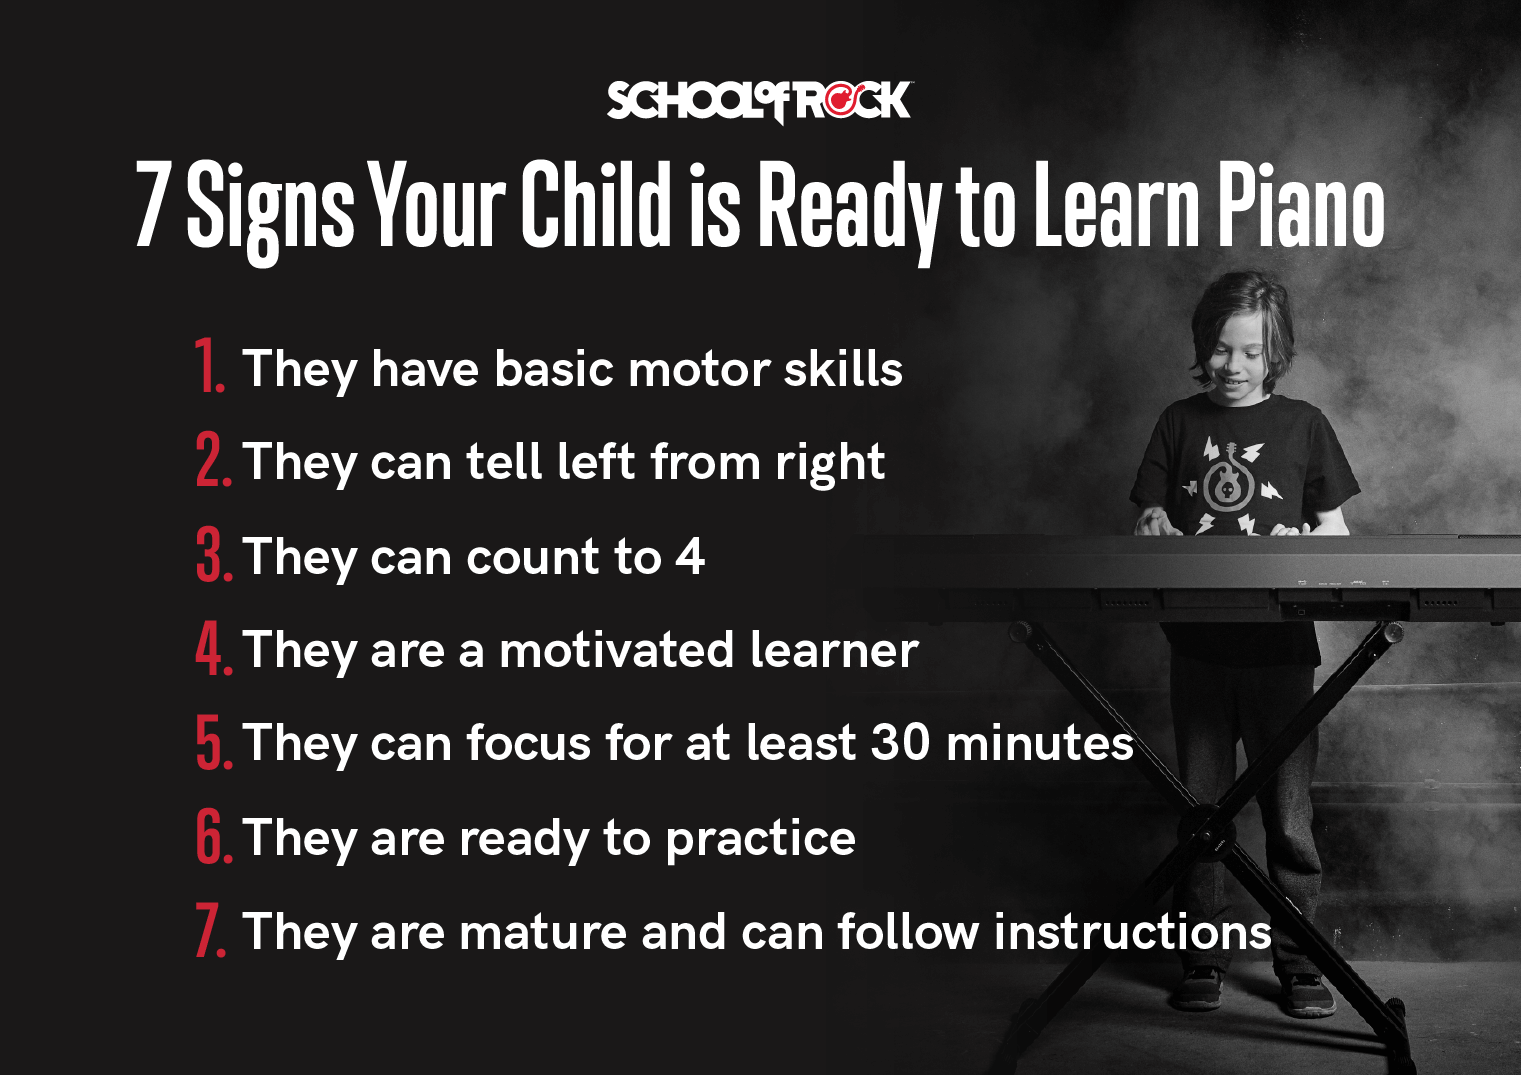 7 signs your child is ready to learn piano